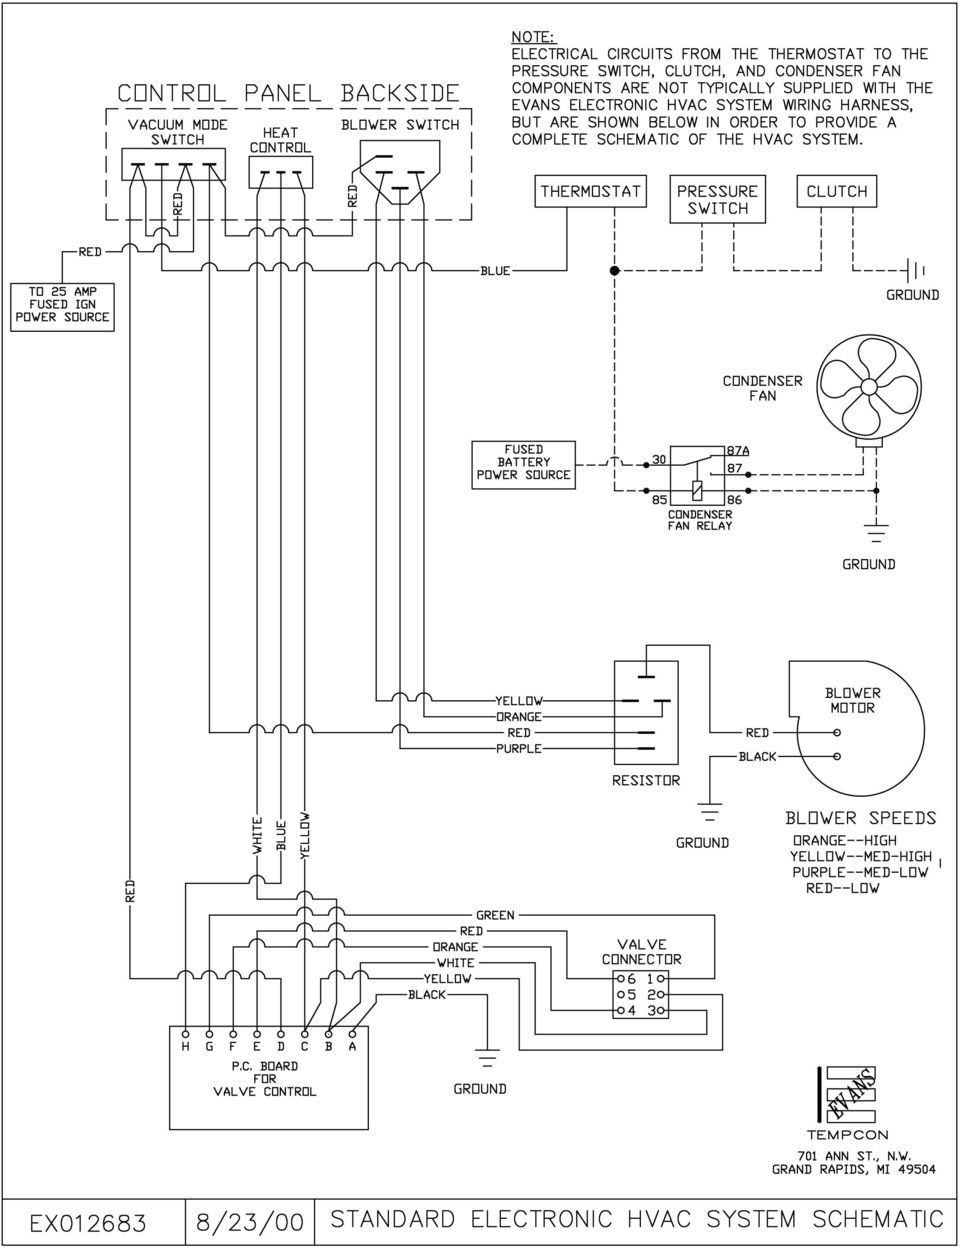 Evans Tempcon Rv Wiring Diagrams Detailed Schematics Diagram 12v Fuse Panel Electronic Temperature Control Troubleshooting Guide For